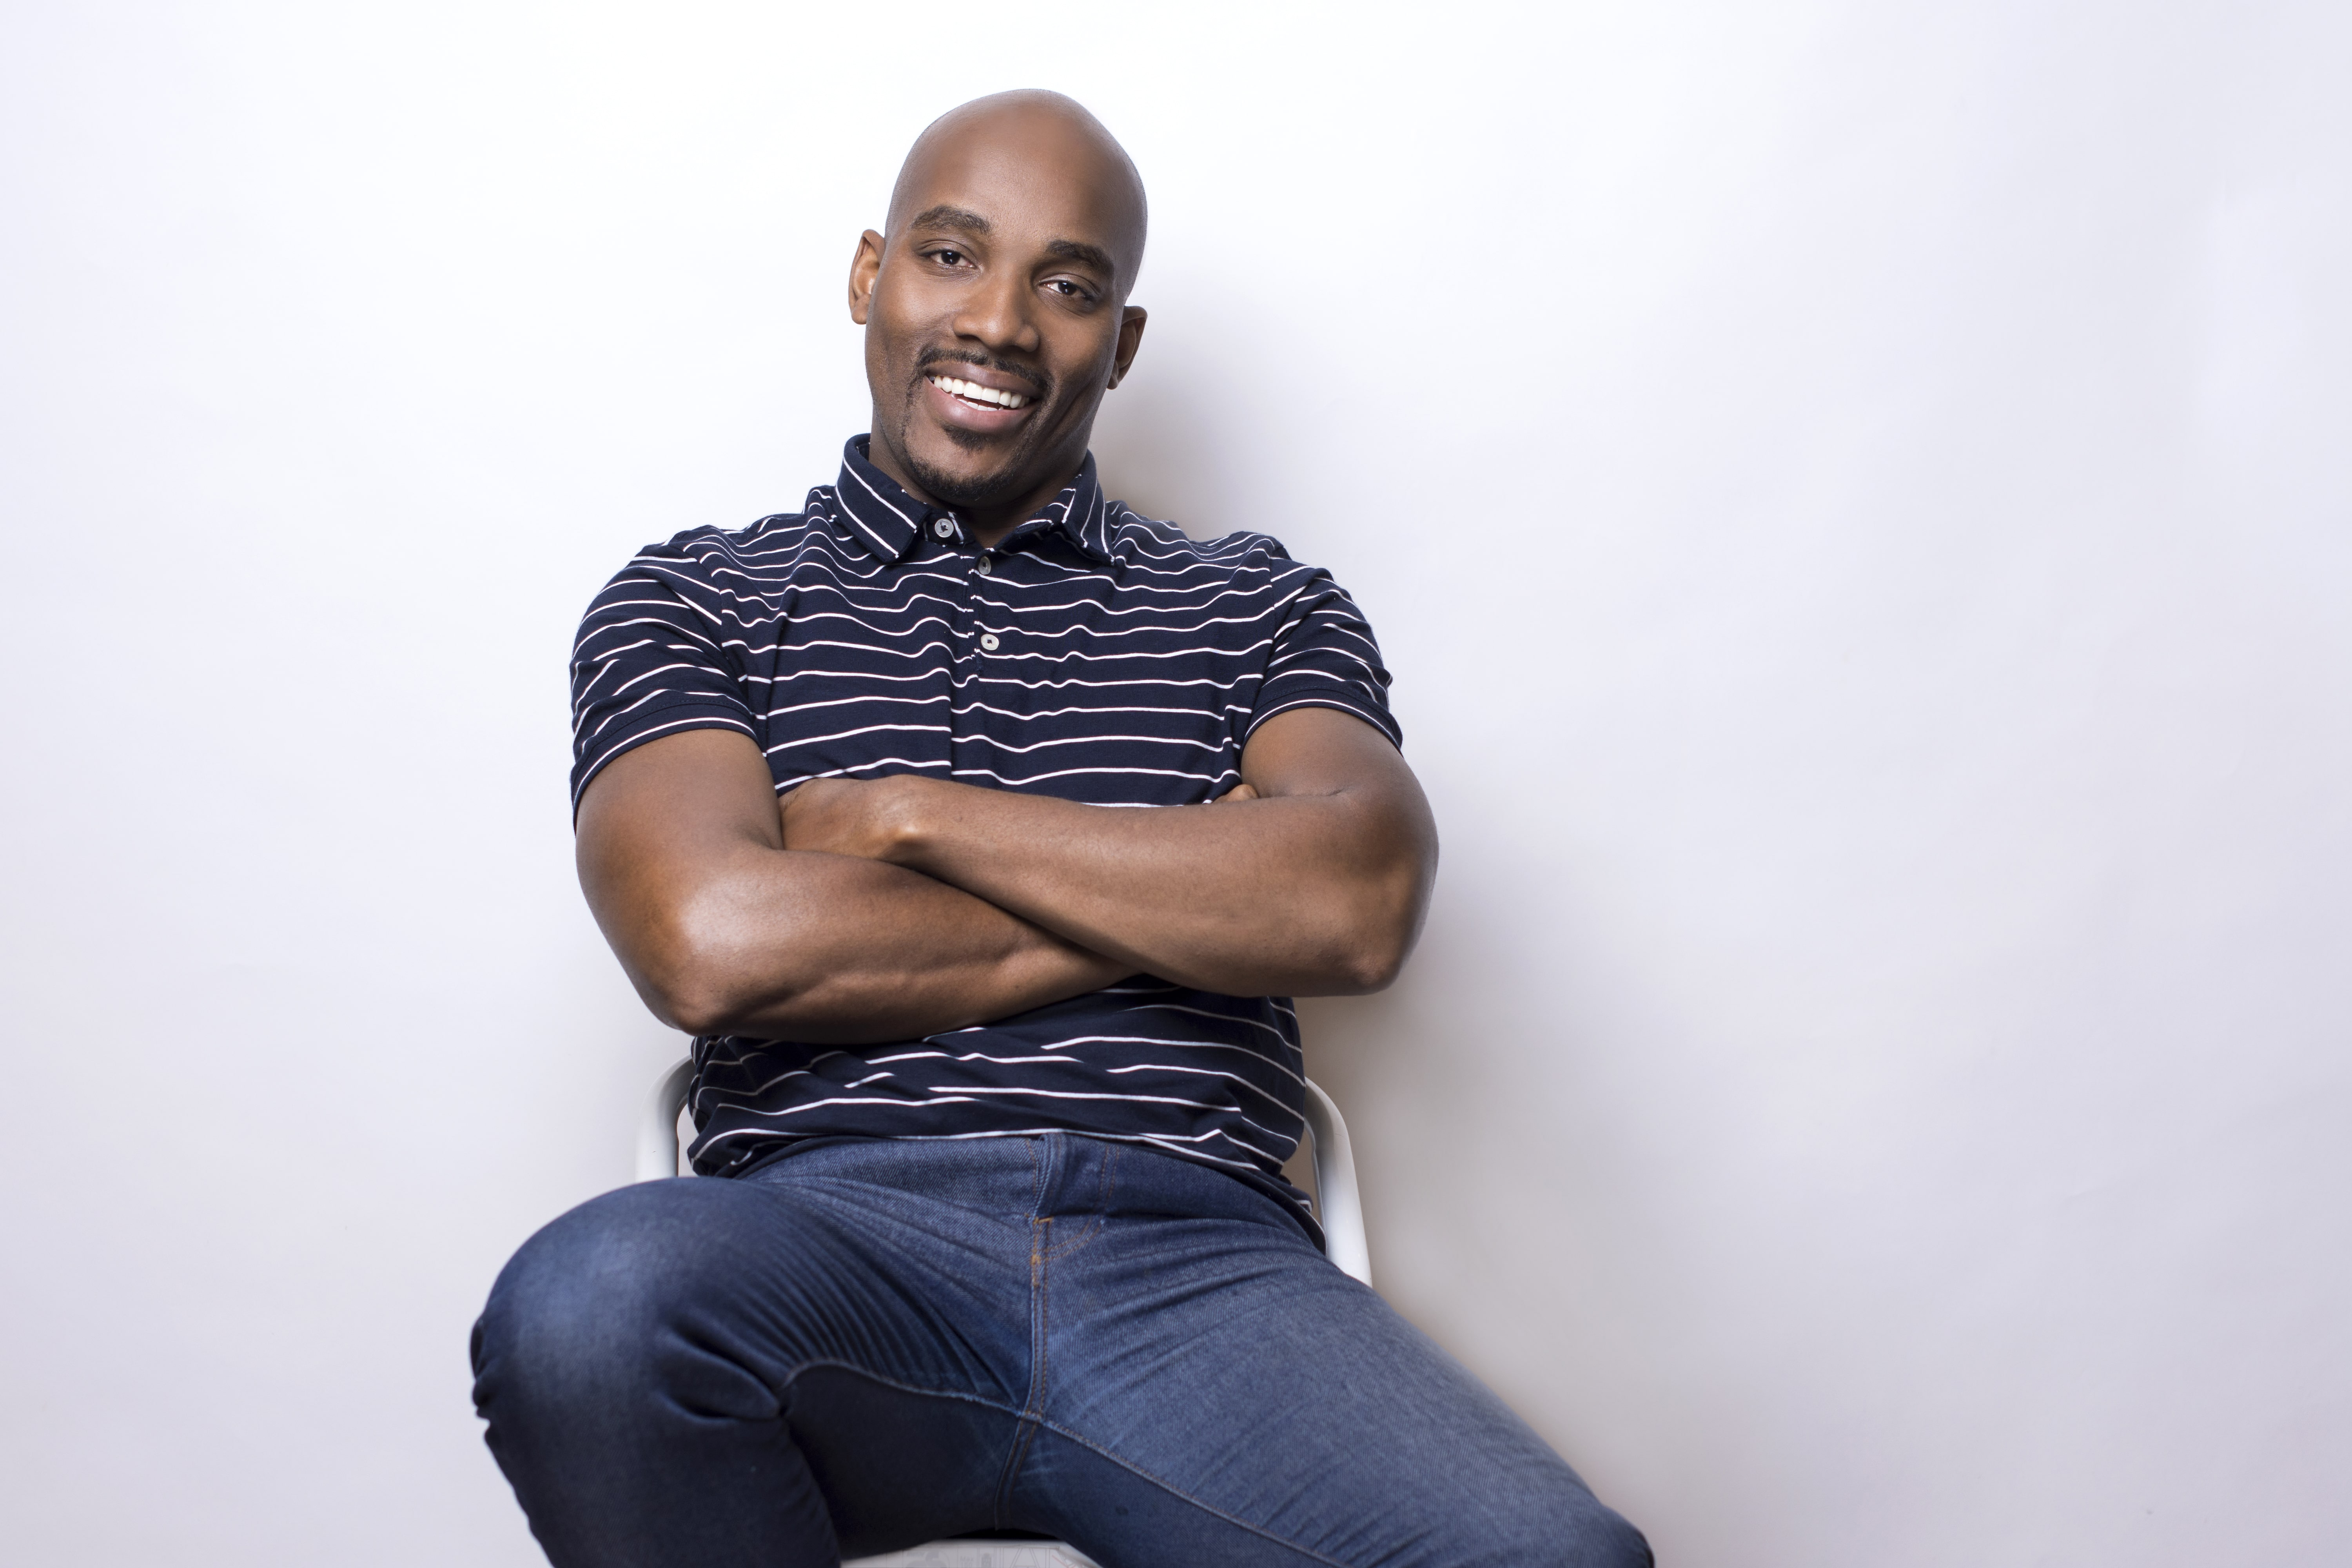 CNLP 358: Sam Collier on Growing Up Black in America, What it Takes to Make it in a White World, and How Whites Can Use Their Influence to Help Bring About Racial Reconciliation